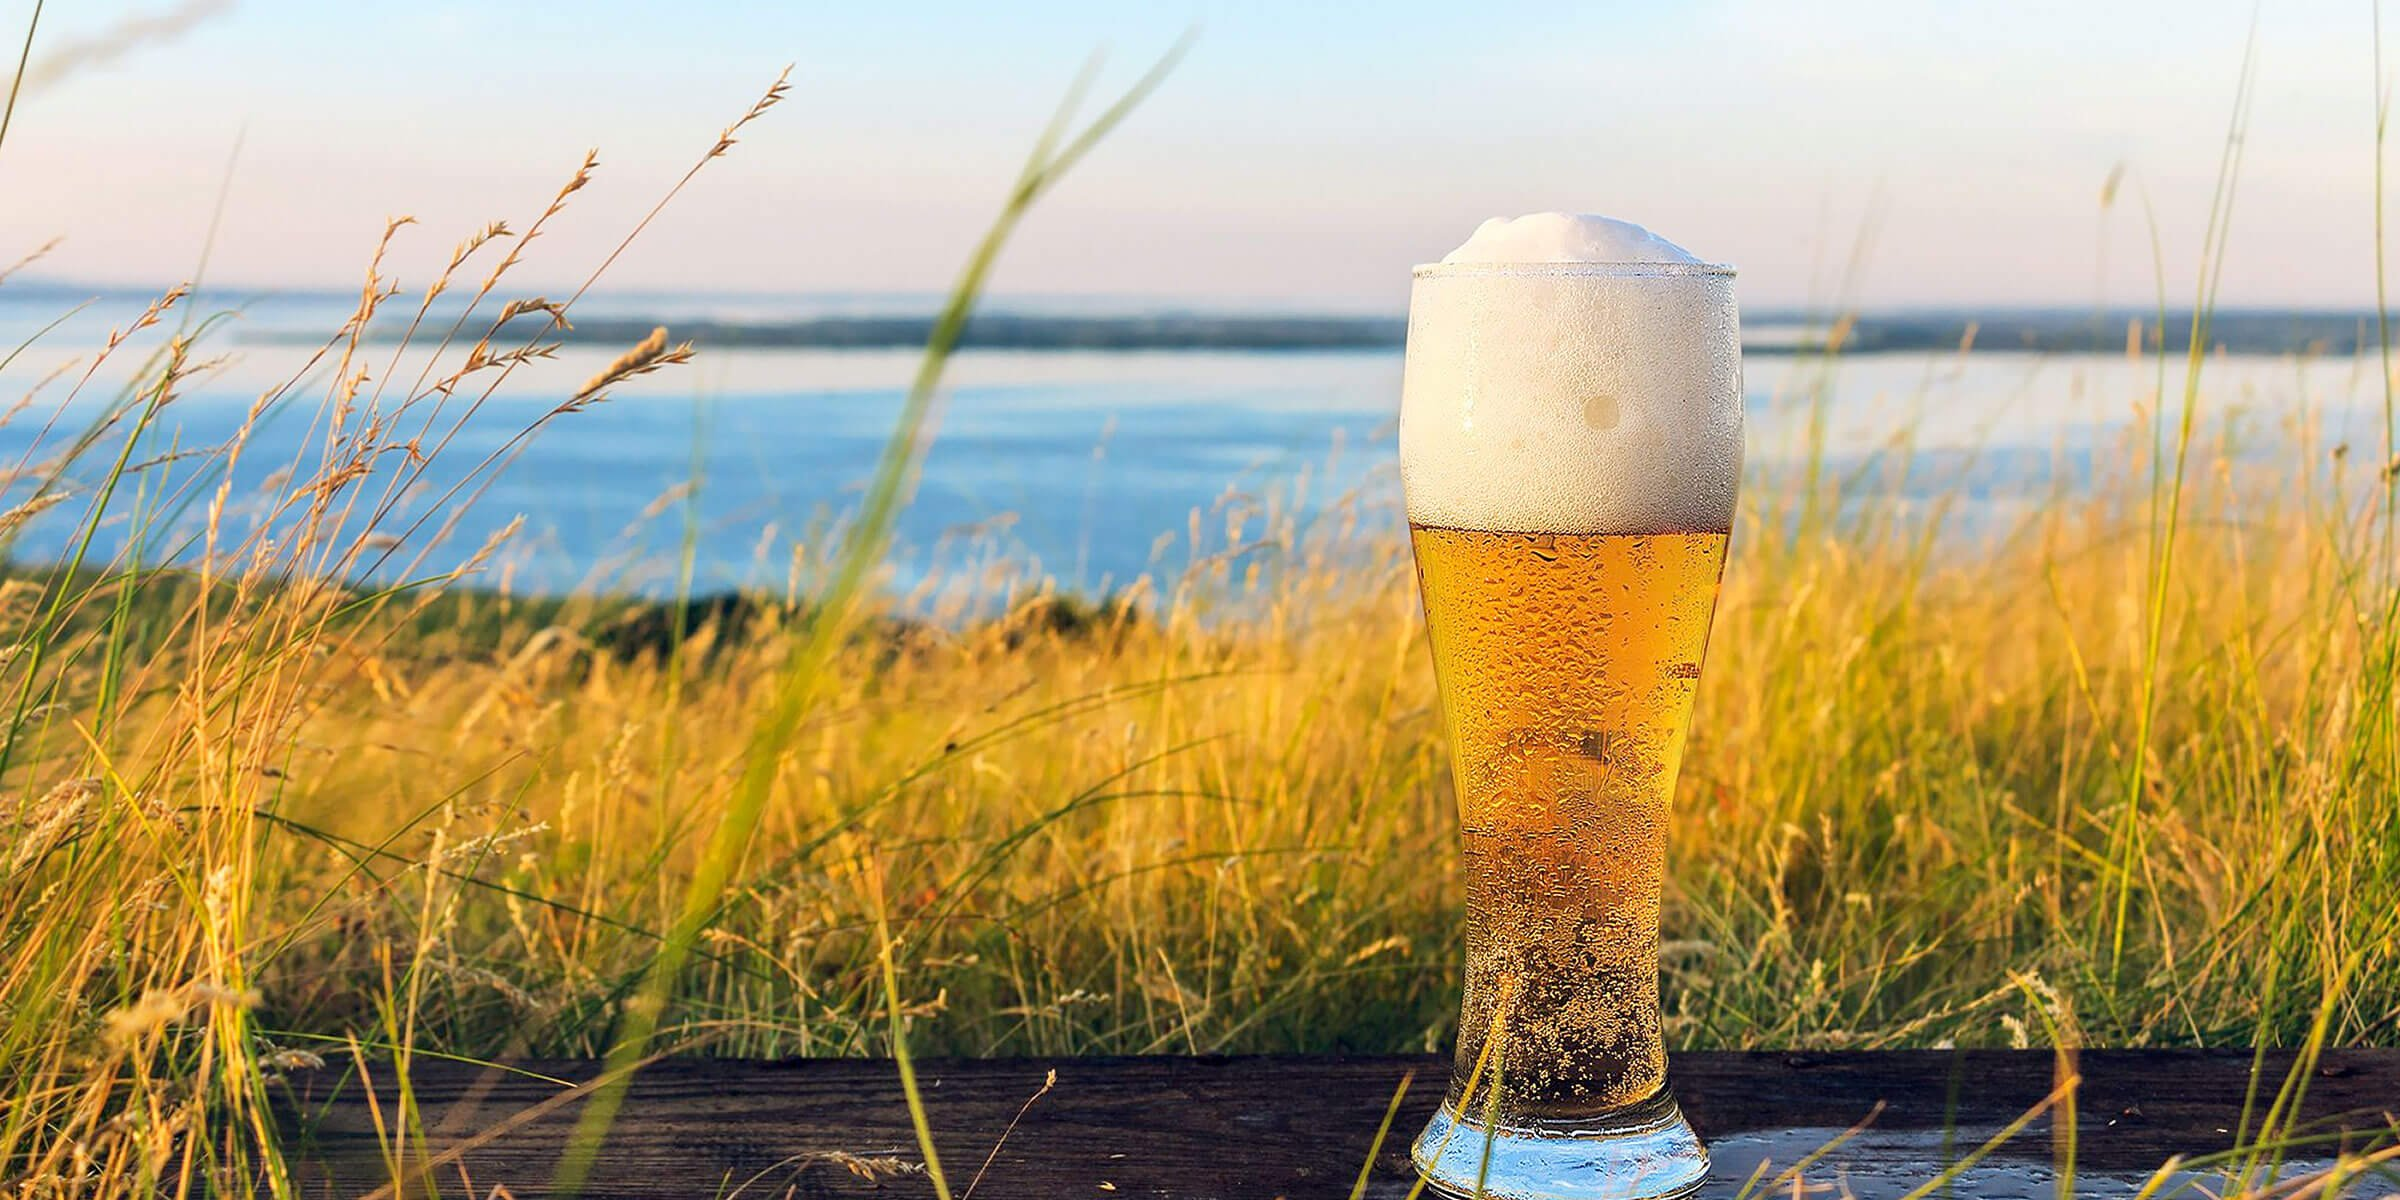 Pale golden beer with a frothy head atop a wooden plank beside a river and surrounded by tall grasses